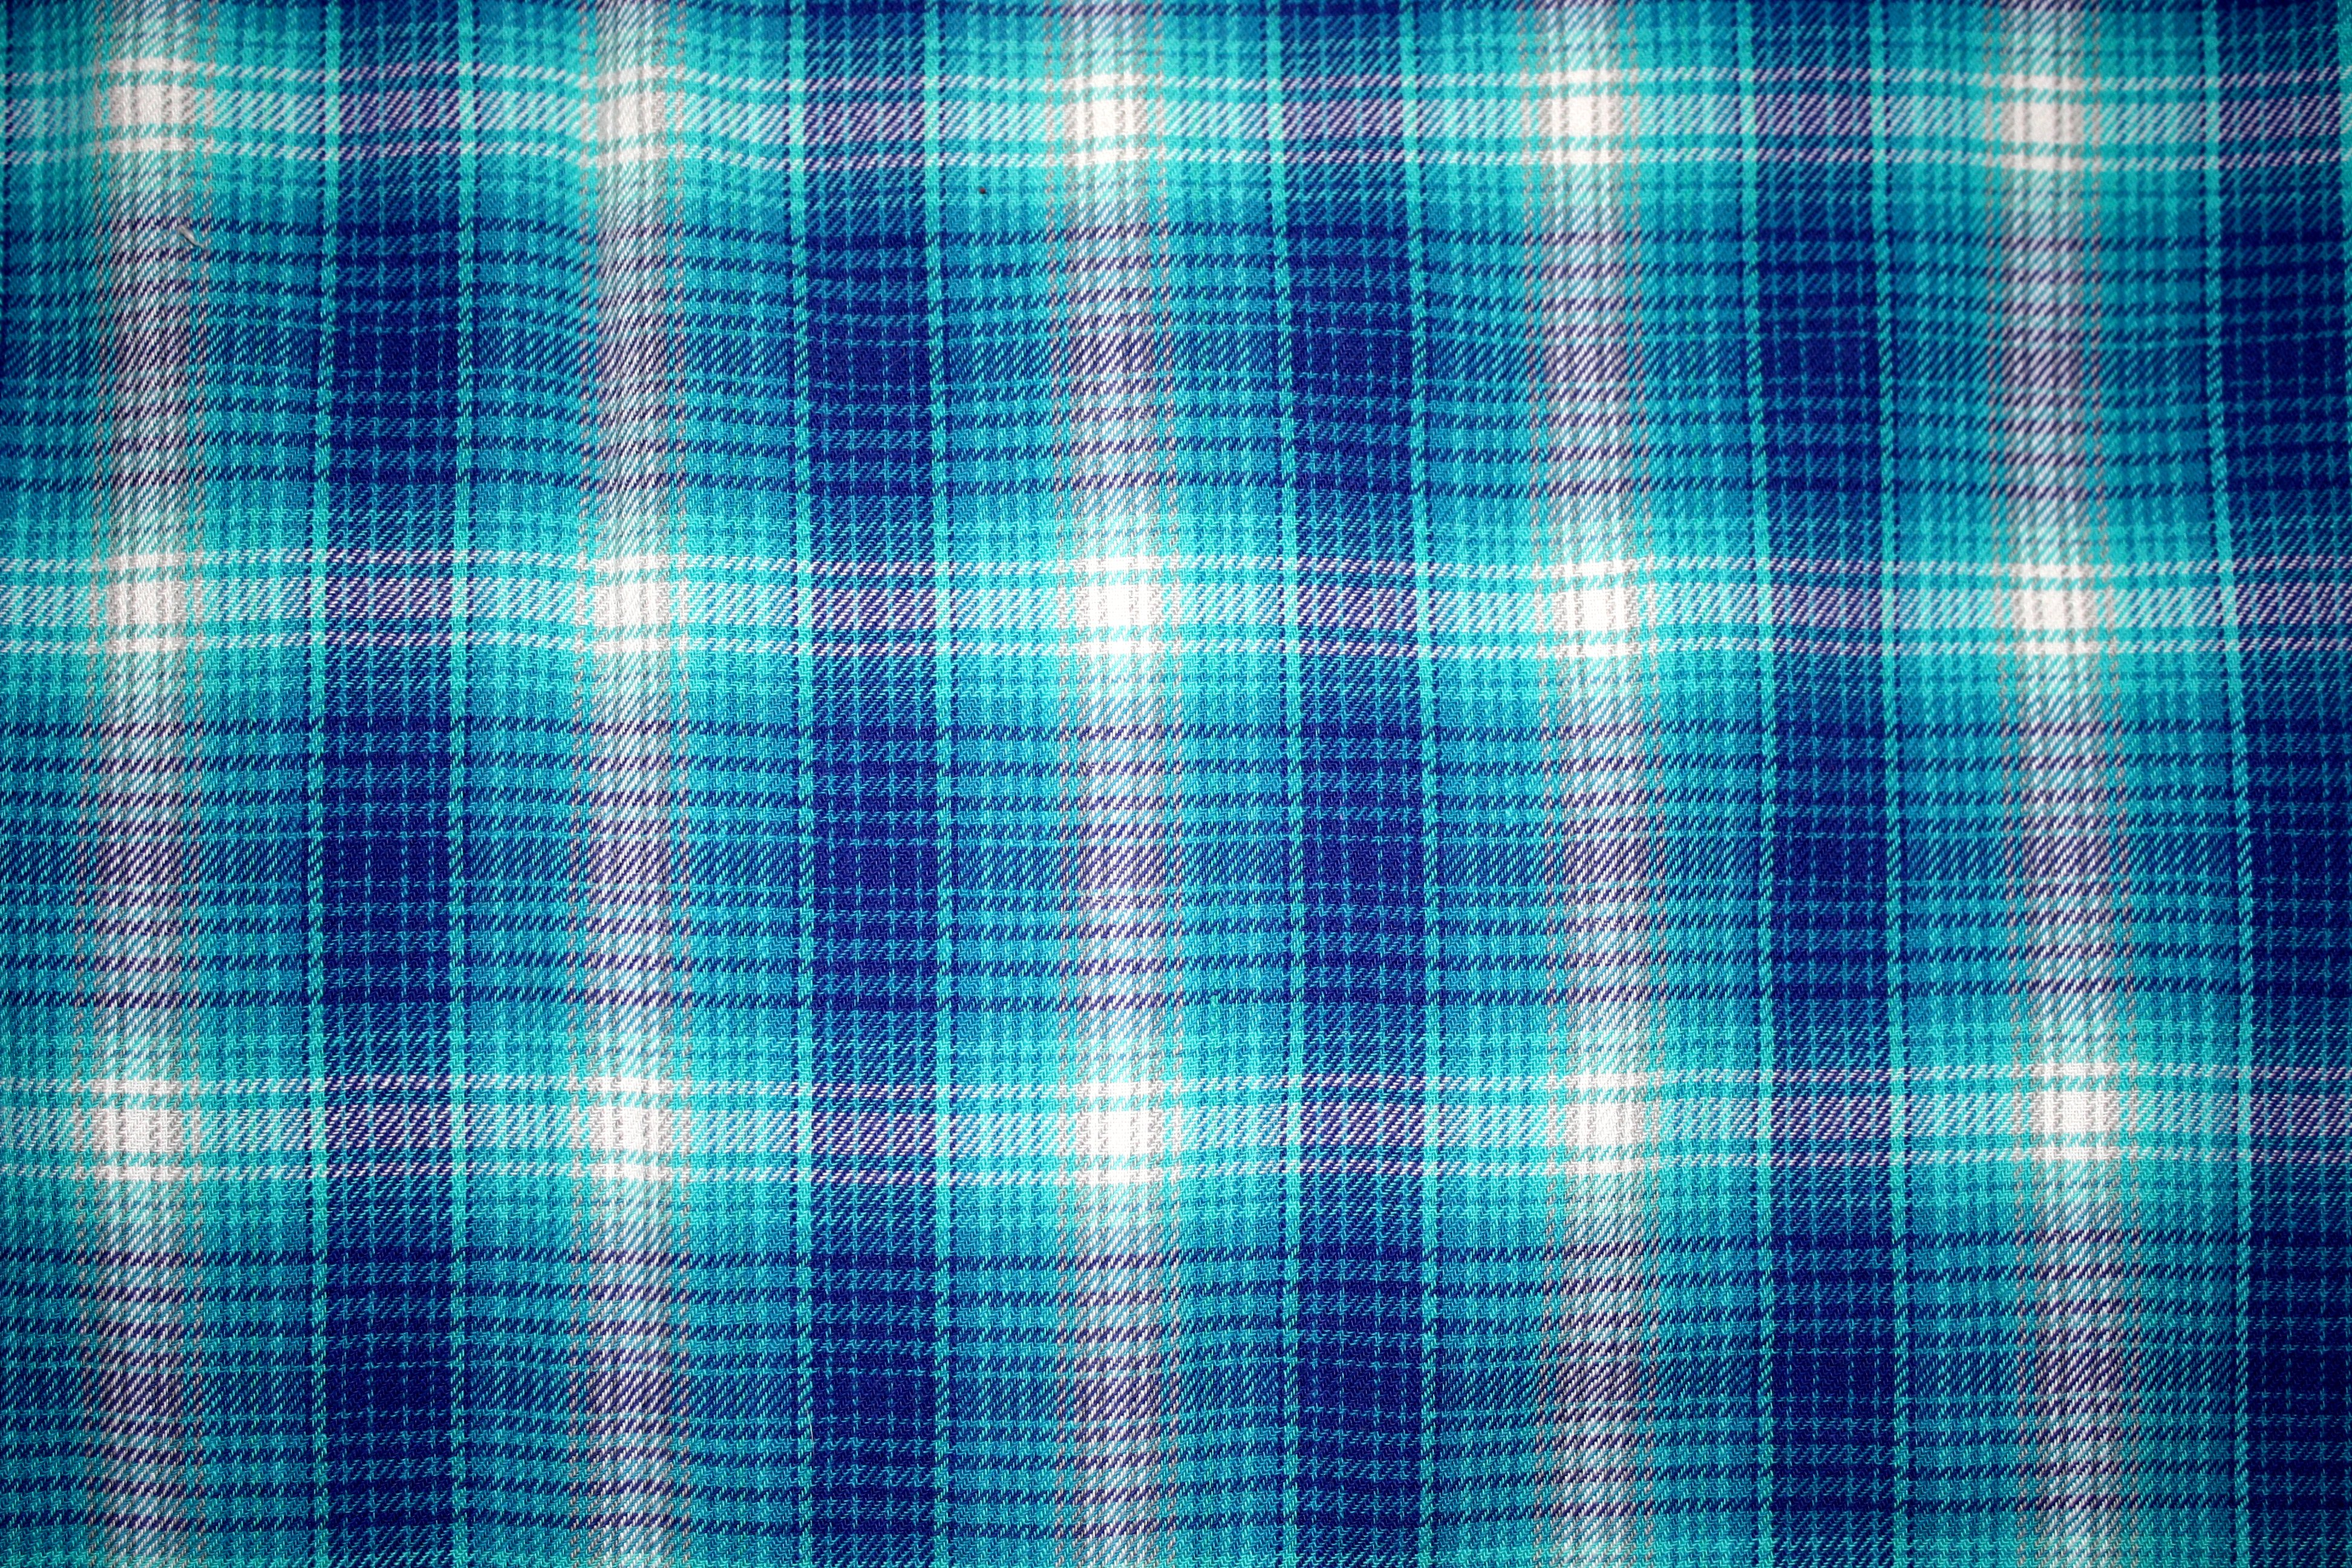 Blue Plaid Fabric Texture Photos Public Domain